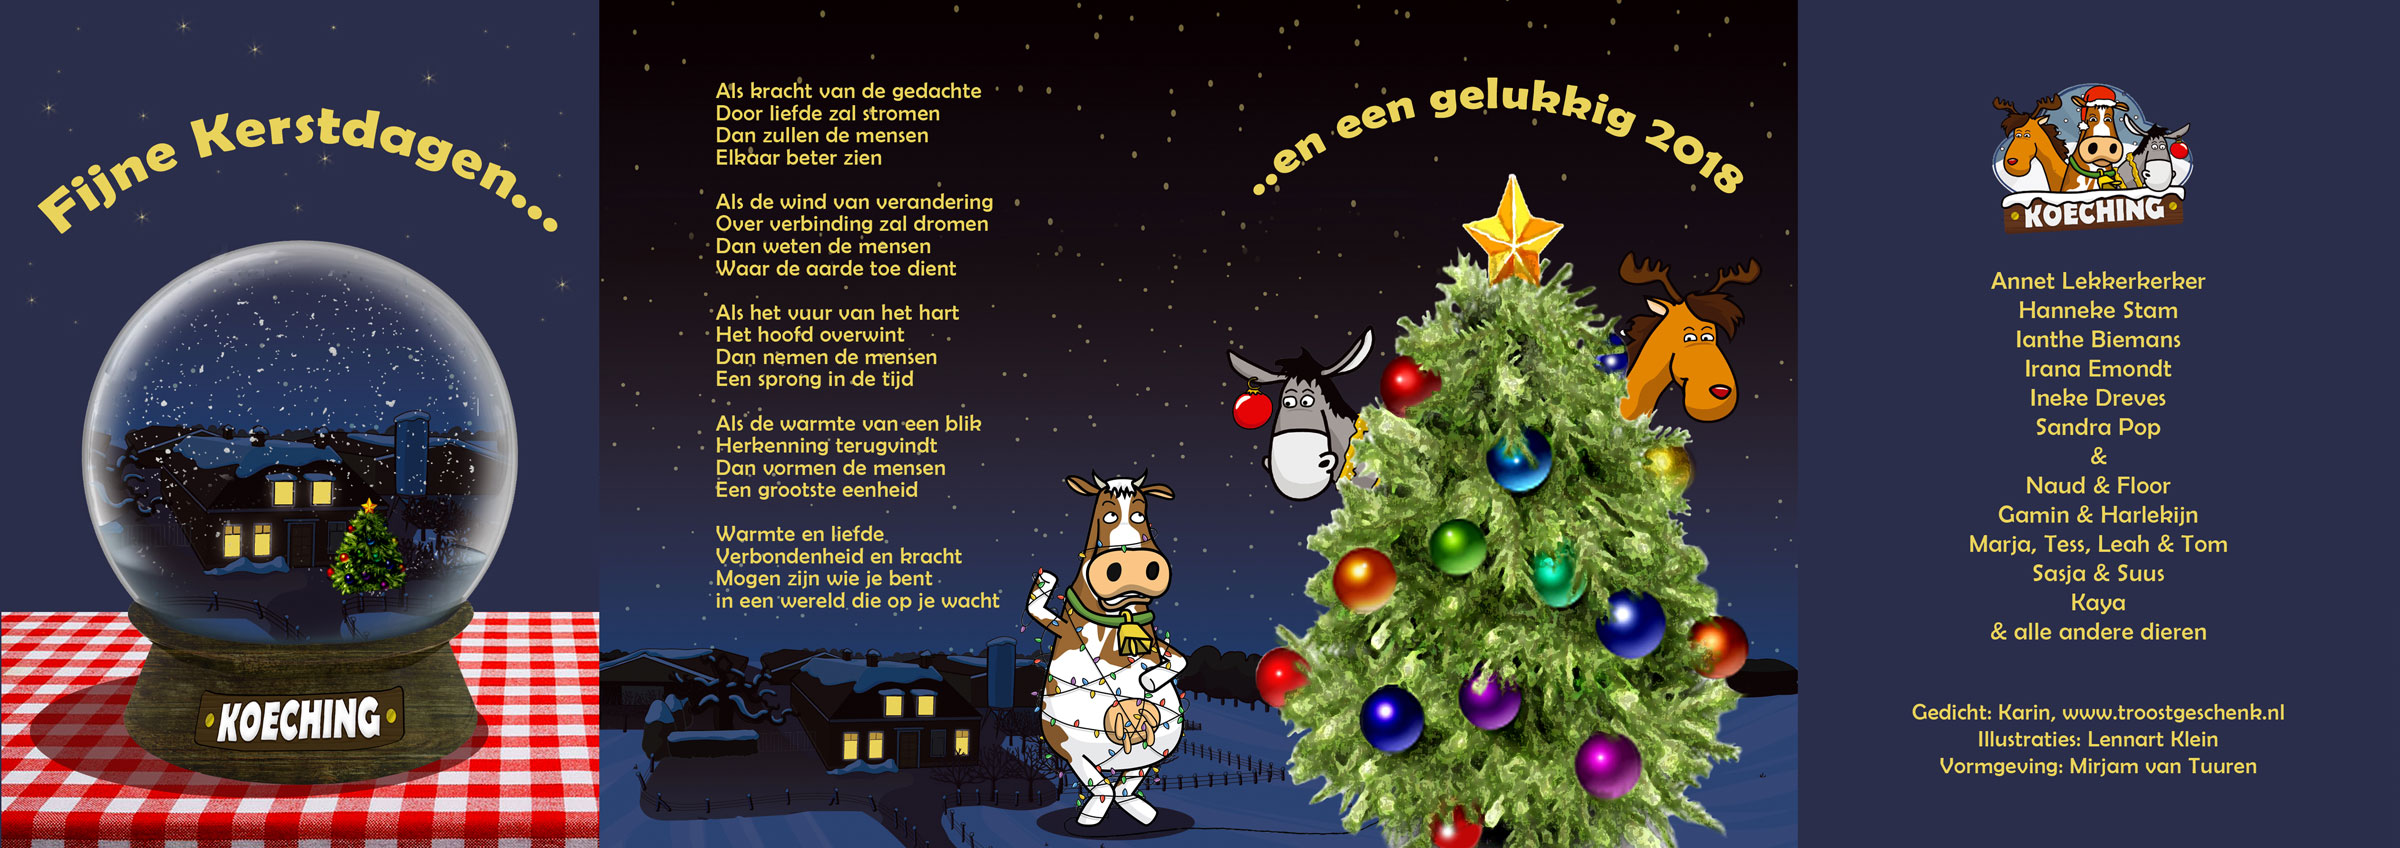 Koeching Amerongen coaching kerstkaart 2017